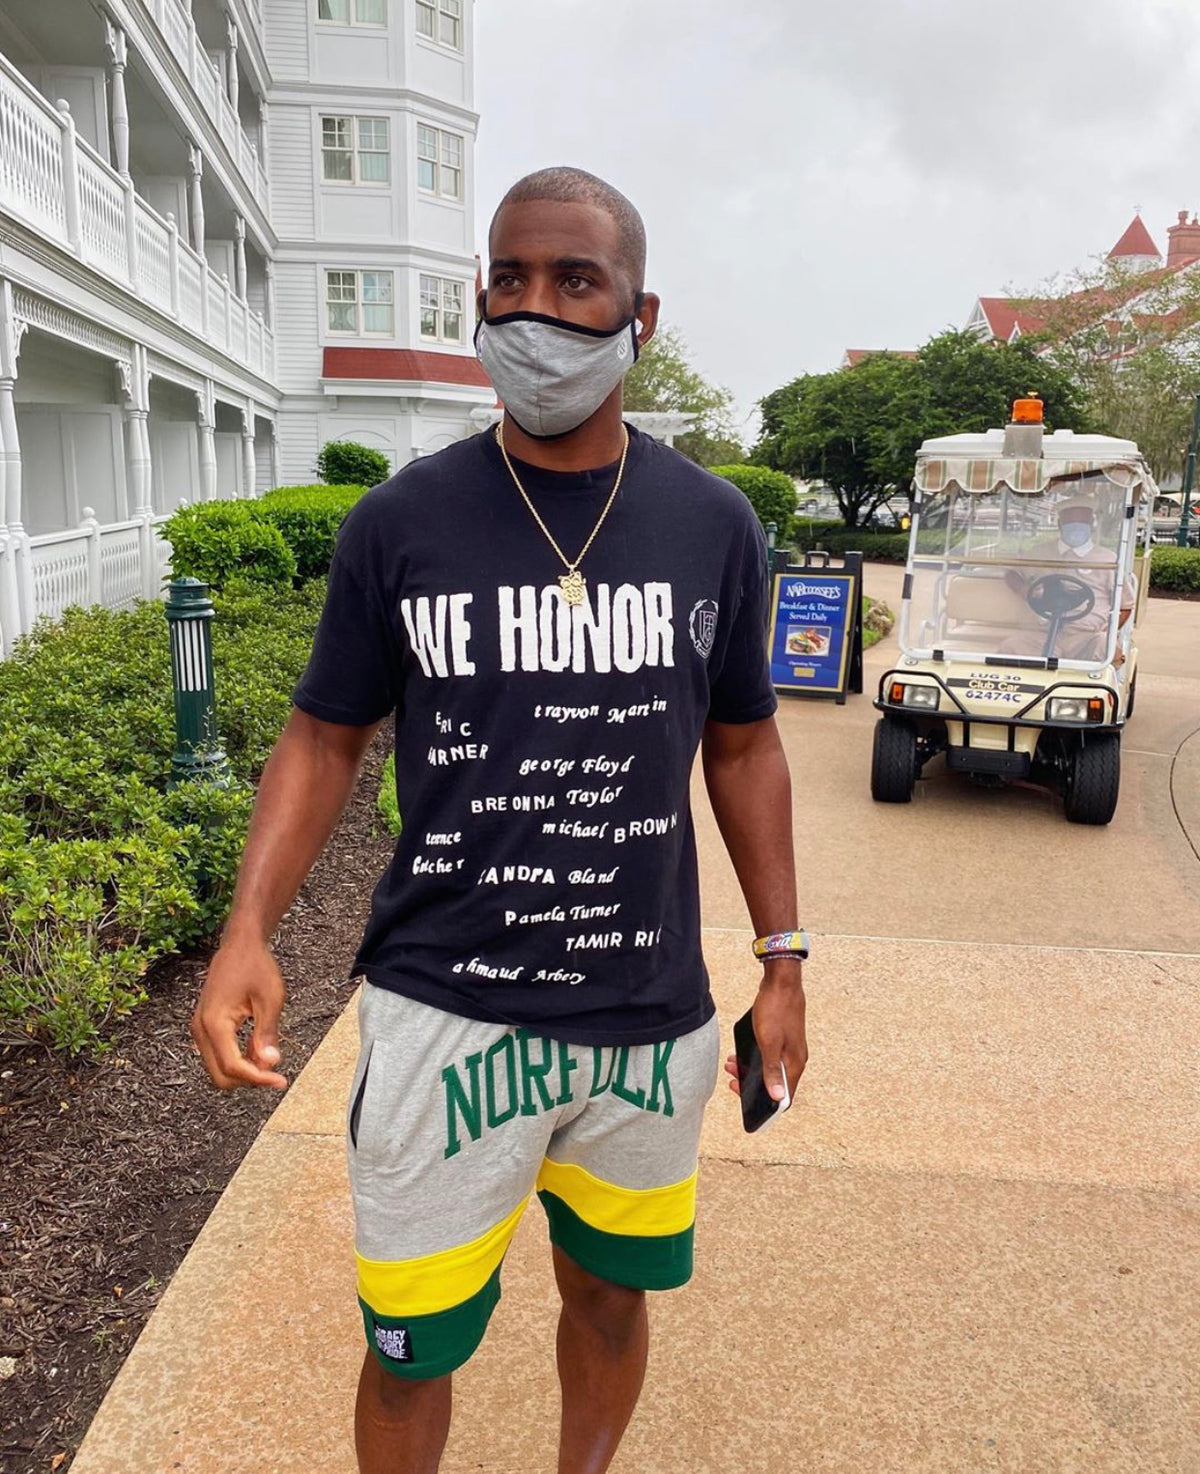 NBA Star, Chris Paul, ignites the HBCU conversation without saying a word